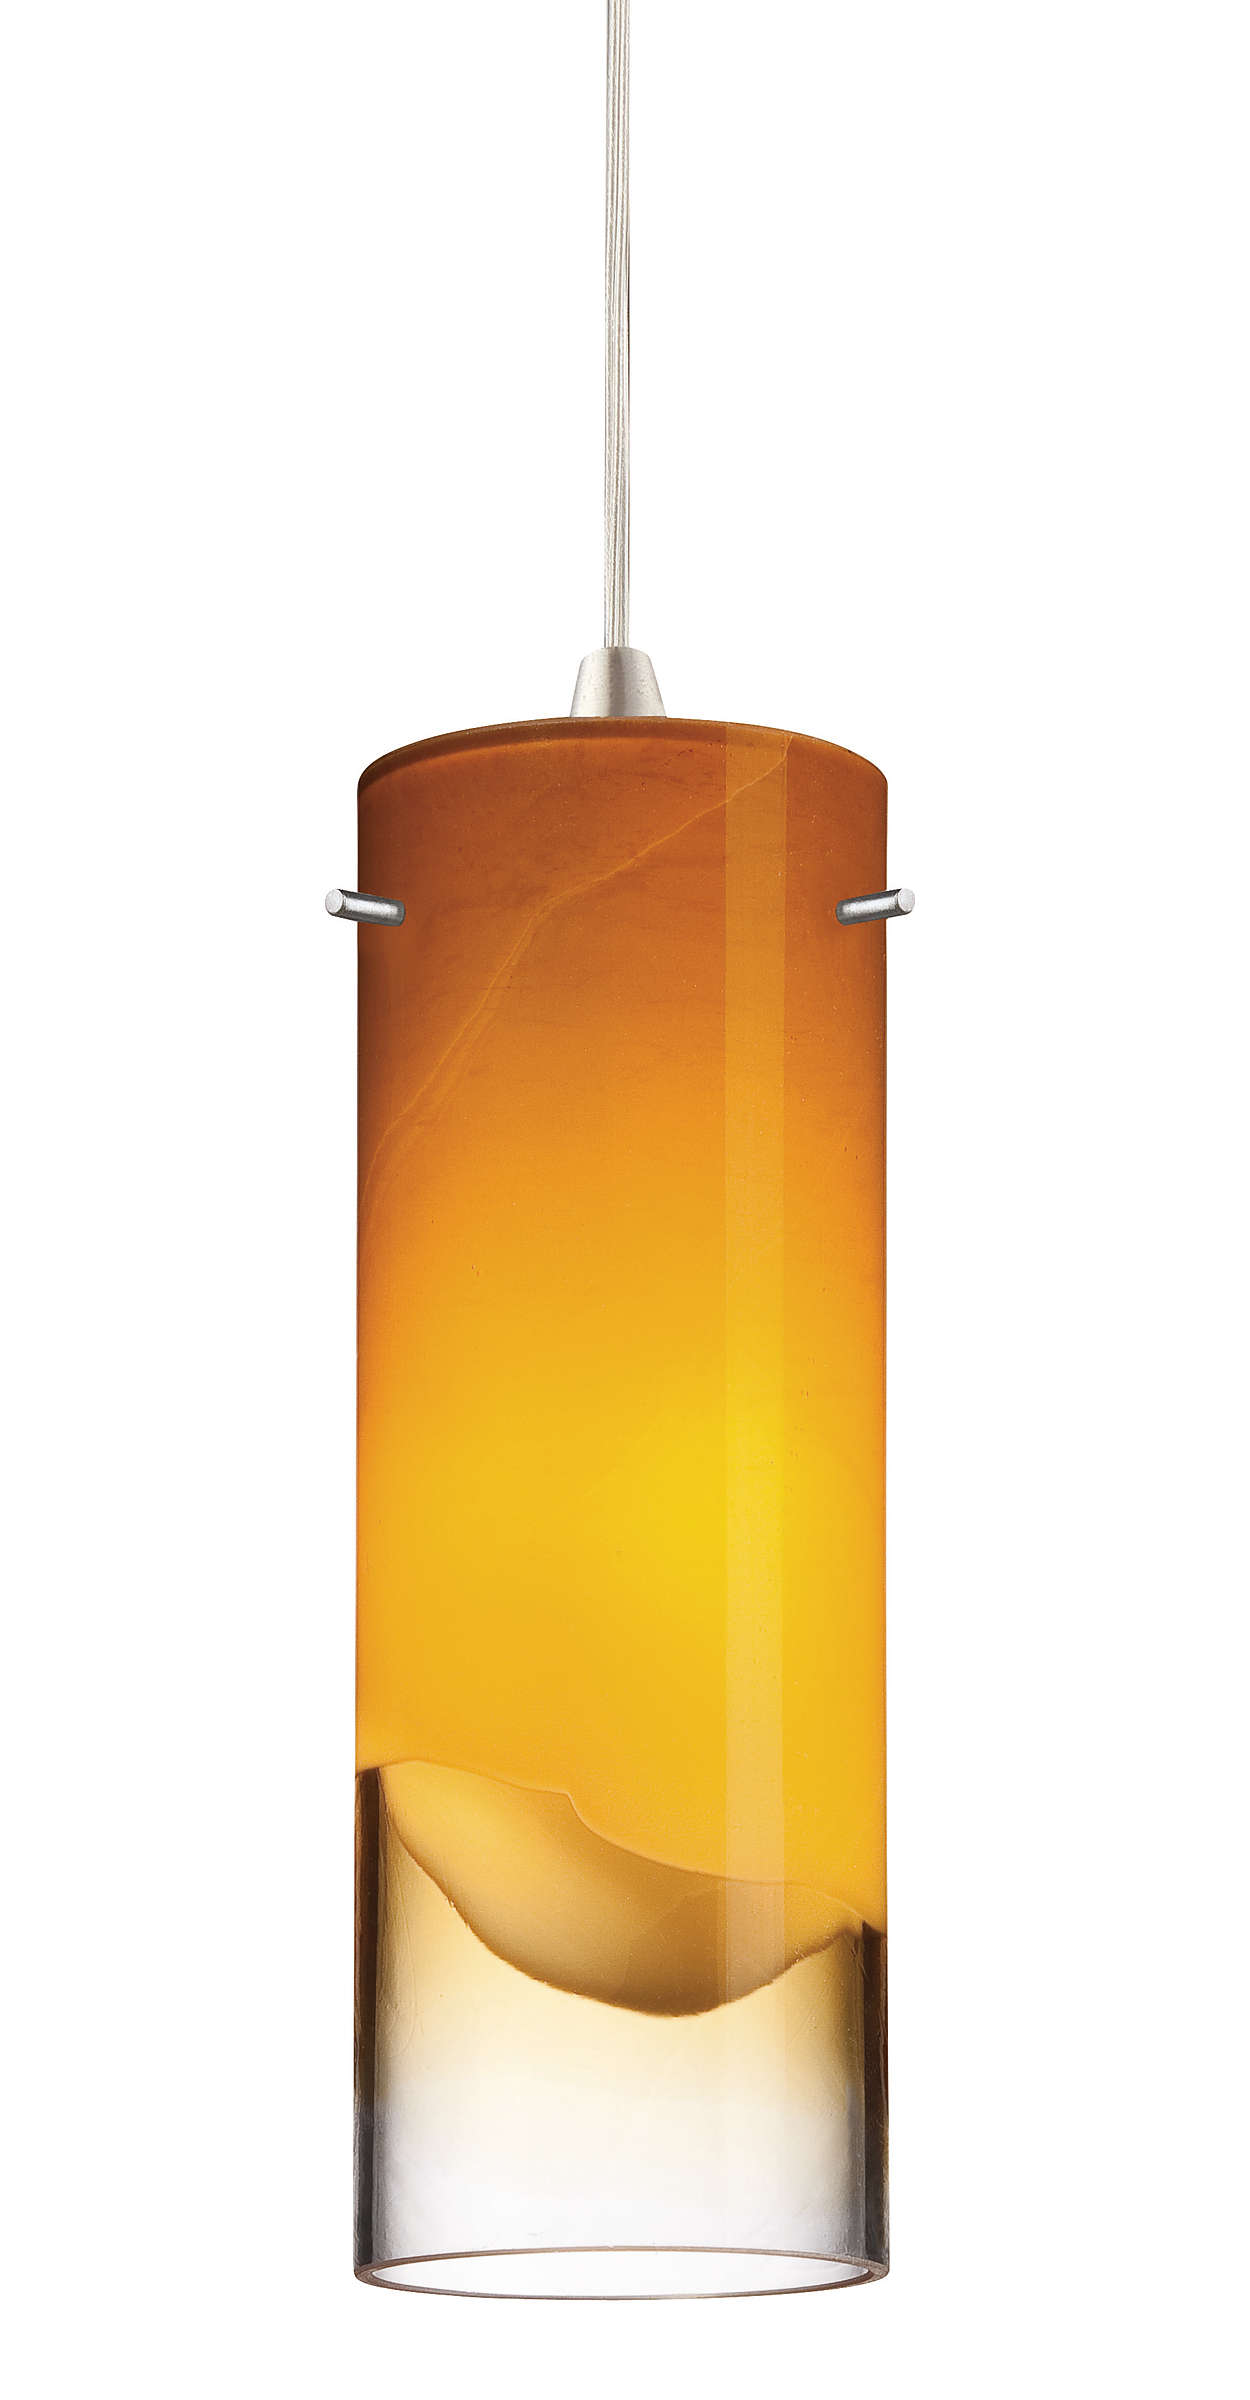 Crete amber glass shade